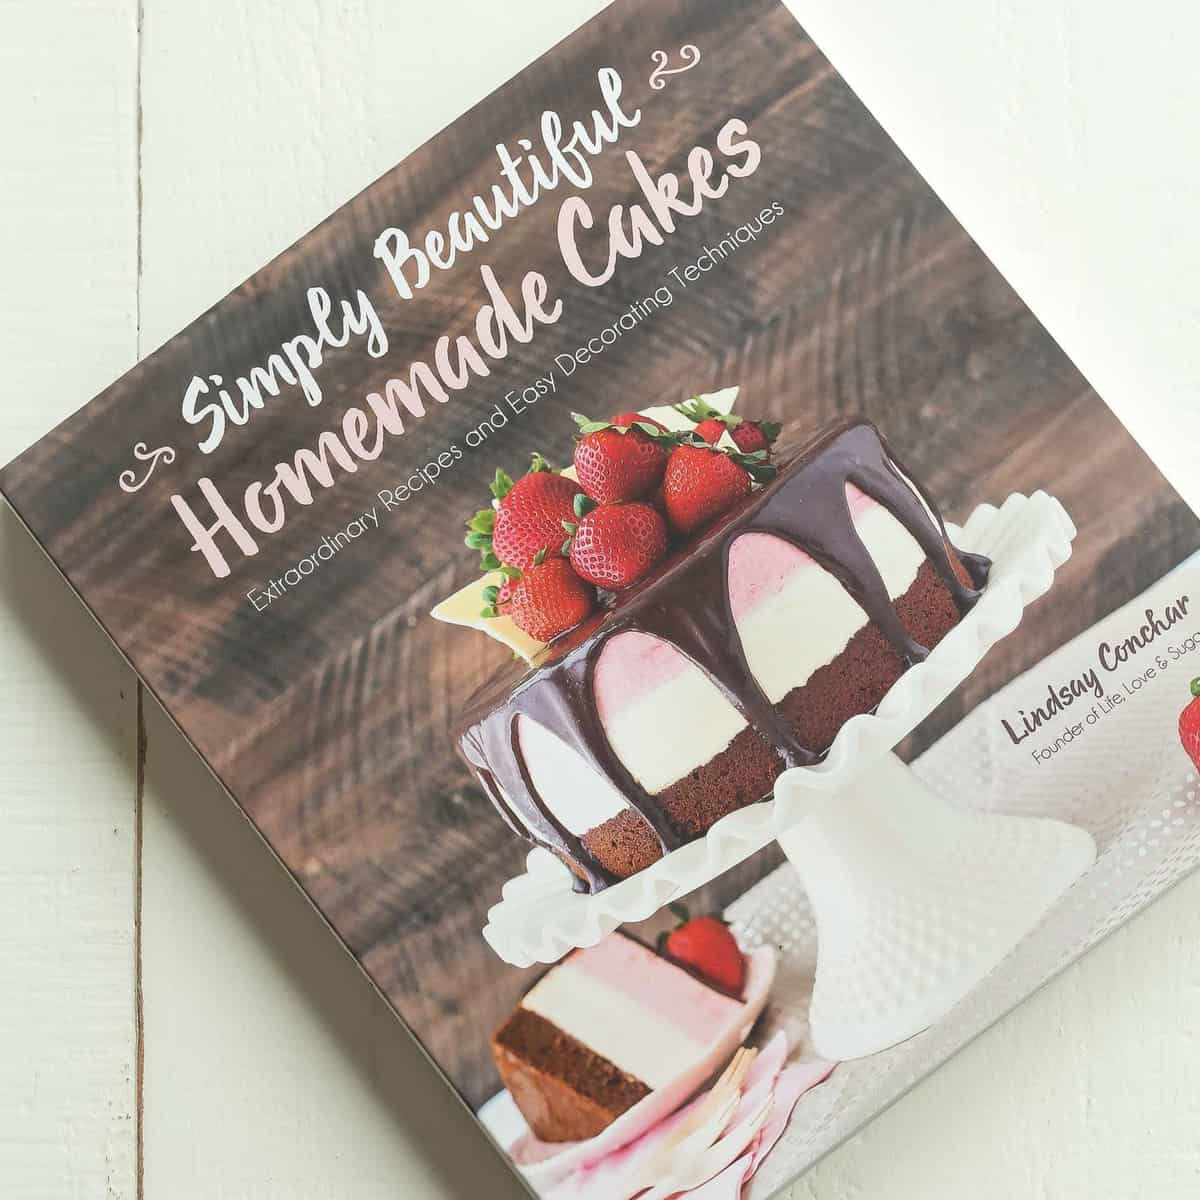 simply beautiful homemade cakes cookbook by lindsay conchar